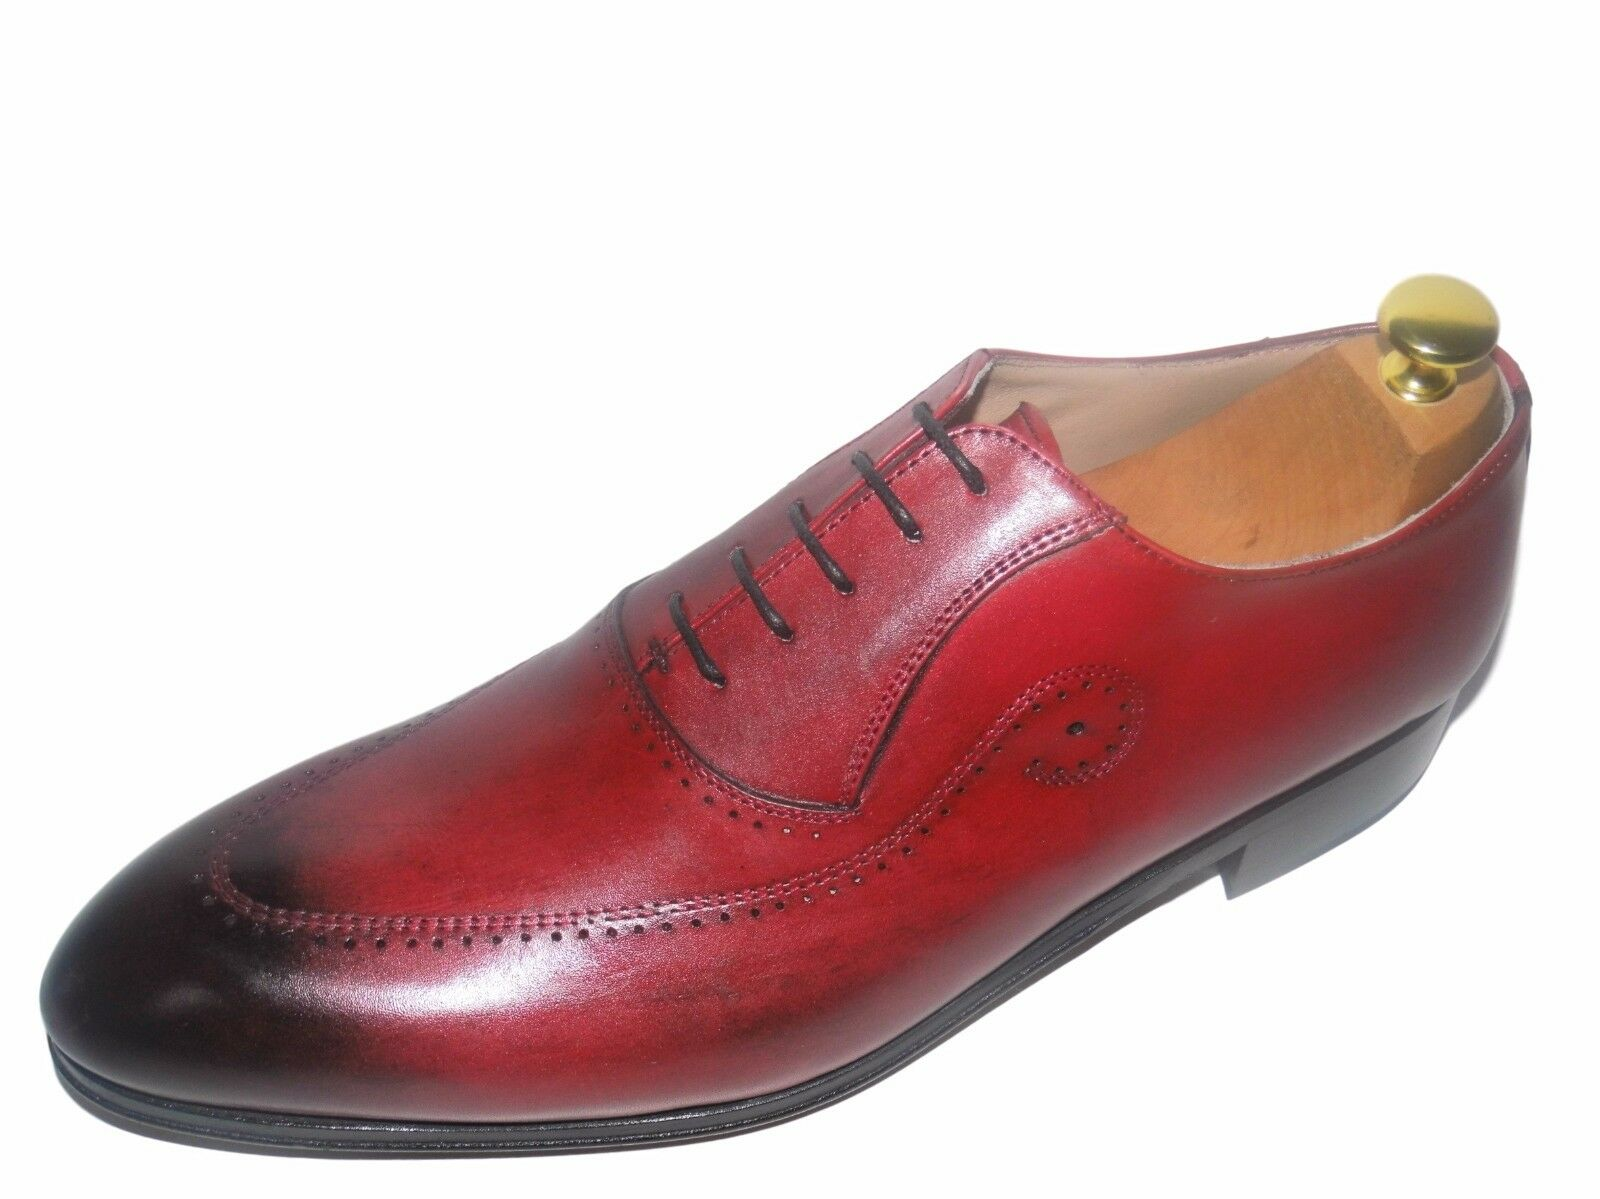 CHAUSSURE ITALIENNE LUXE HOMME ROUGE BORDEAUX NEUF COUSU MAIN